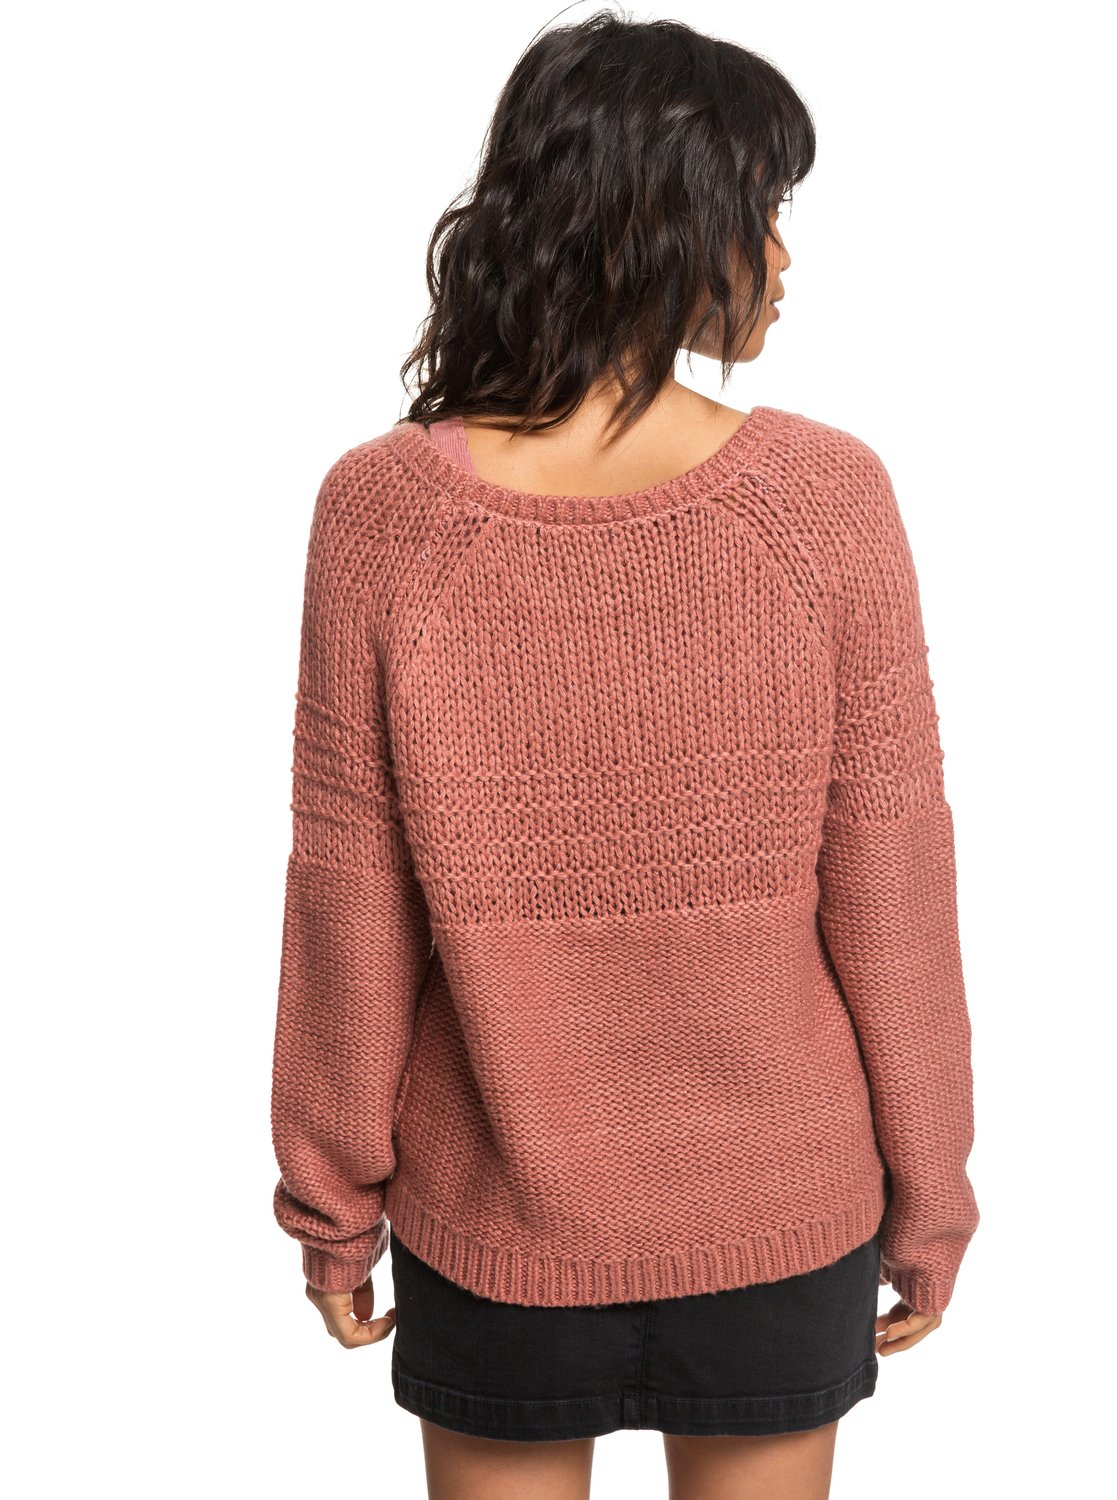 Stories Urban Pour Erjsw03274 Rond Pull Roxy Col Femme 4 Rose 7vgqwxw